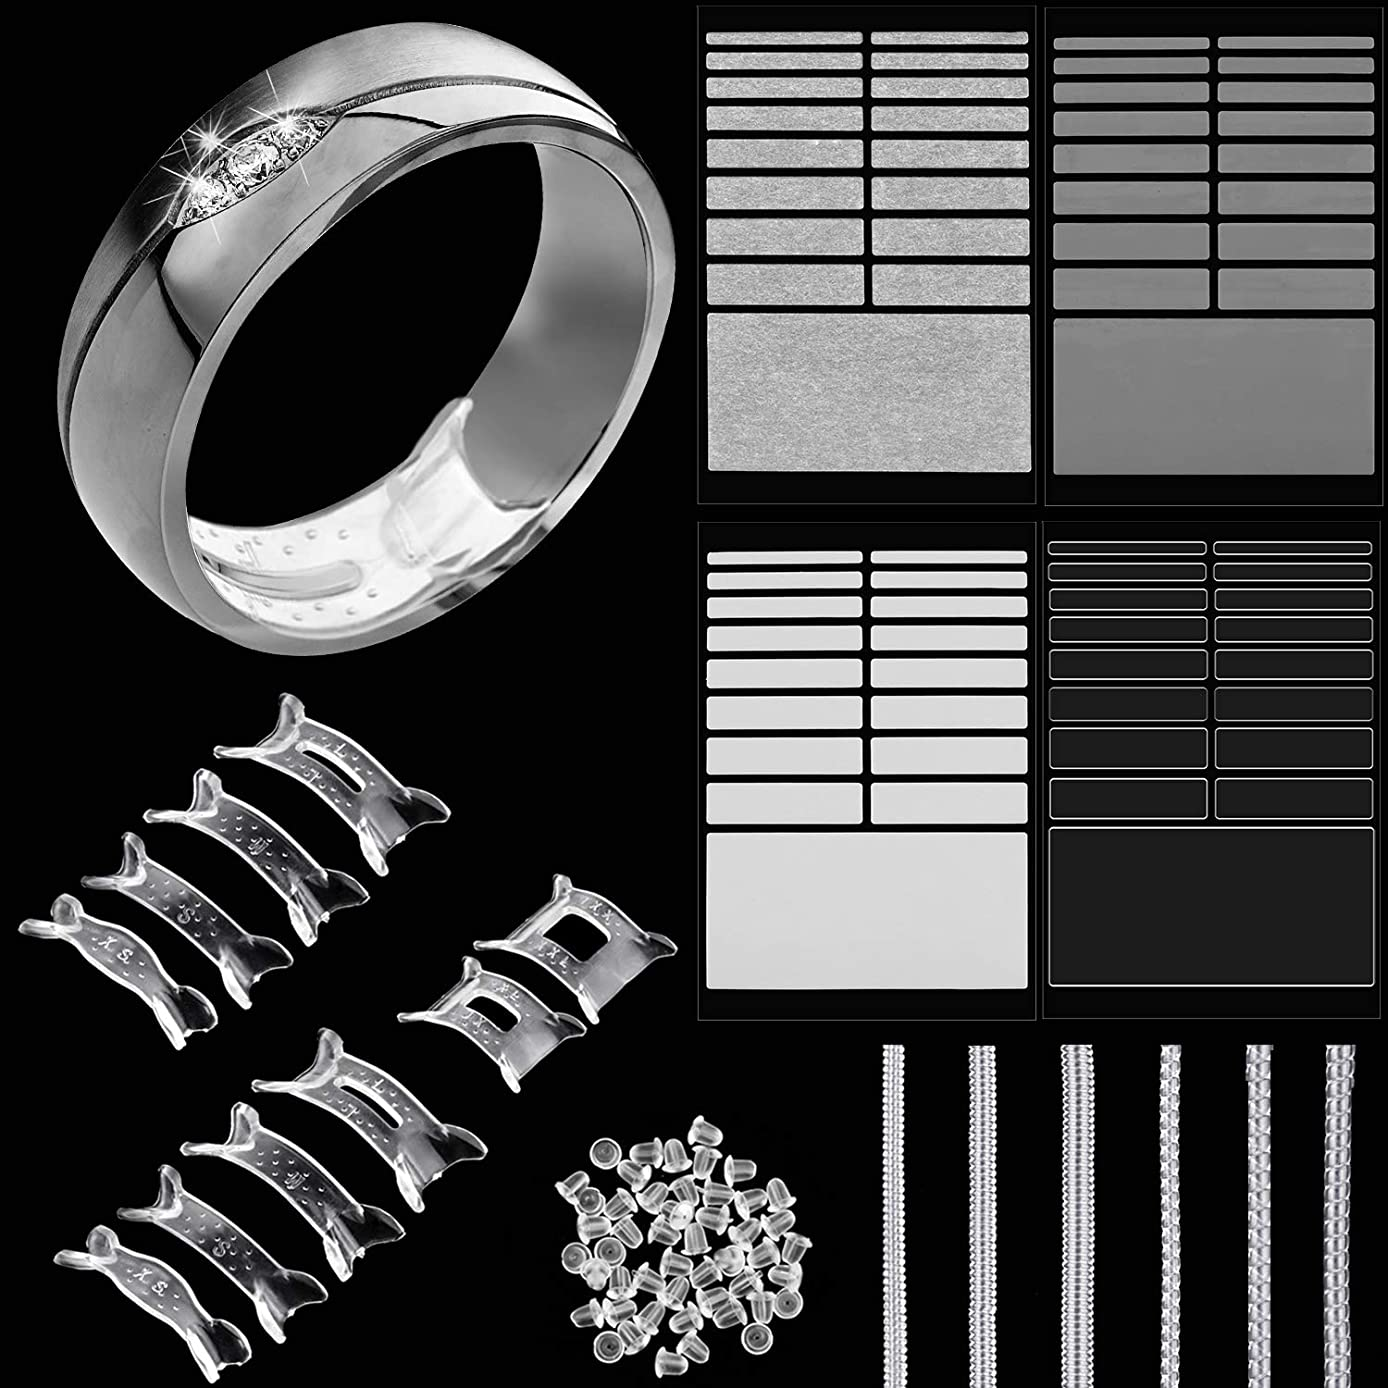 Ring Size Adjusters Invisible Ring Size Reducer for Any Size Loose Ring, Ring Adjuster with Jewelry Polishing Cloth, 3 Styles (Set 2)